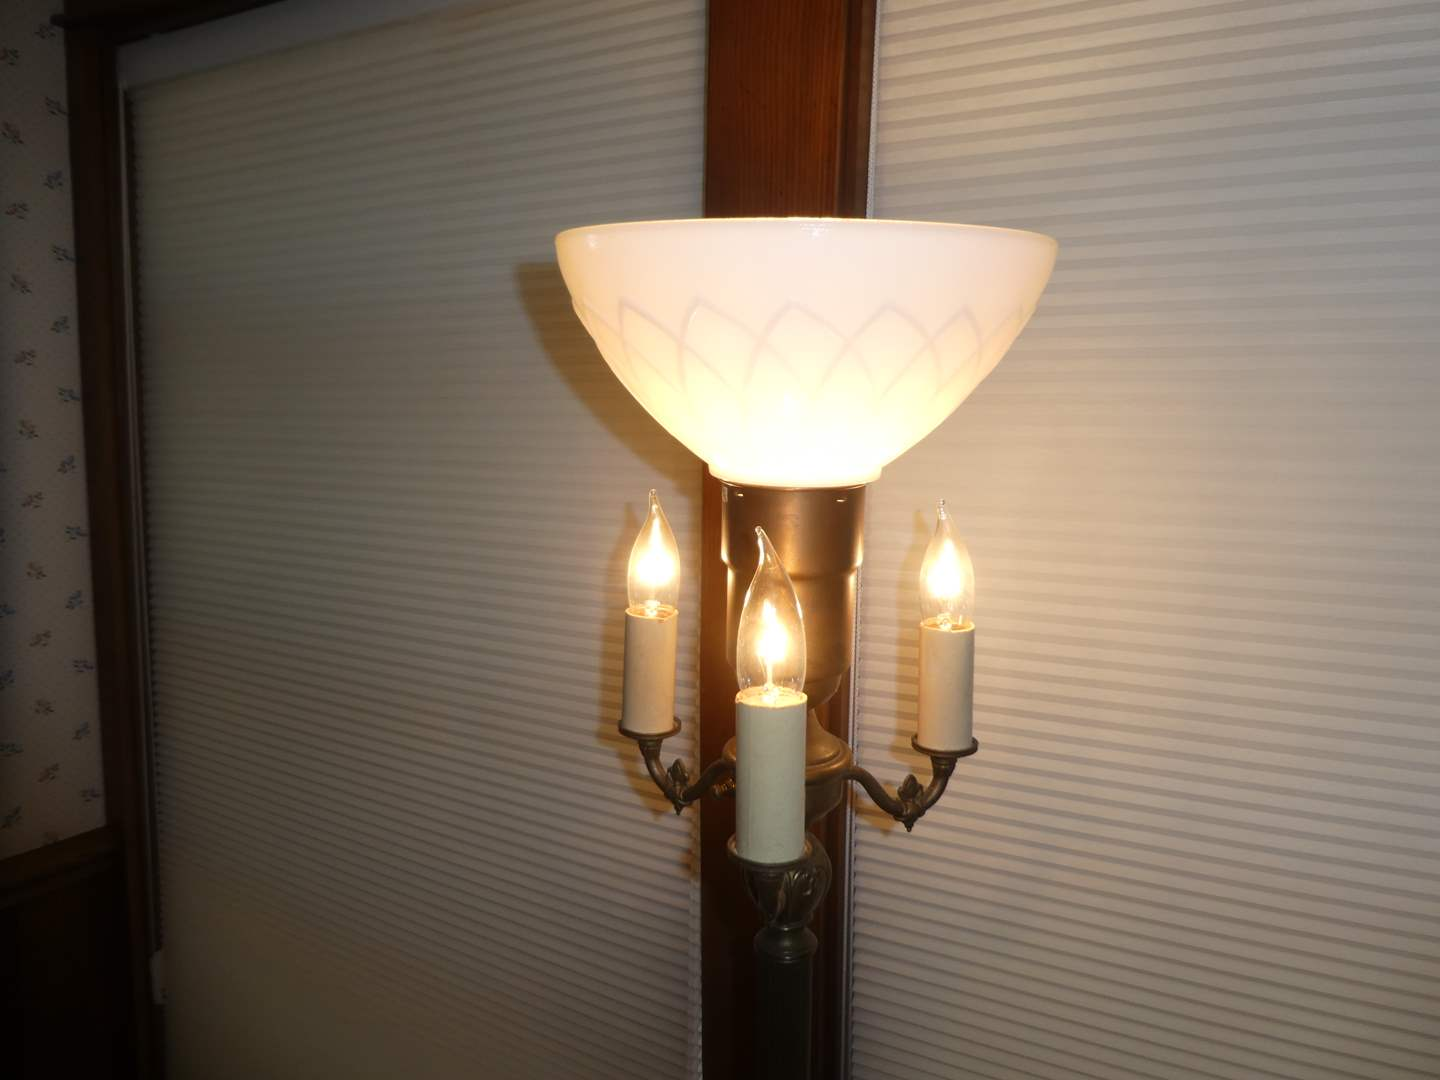 Lot # 8 - Vintage Underwriters Laboratories Inc. Portable Floor Lamp (Brass and Marble) (main image)